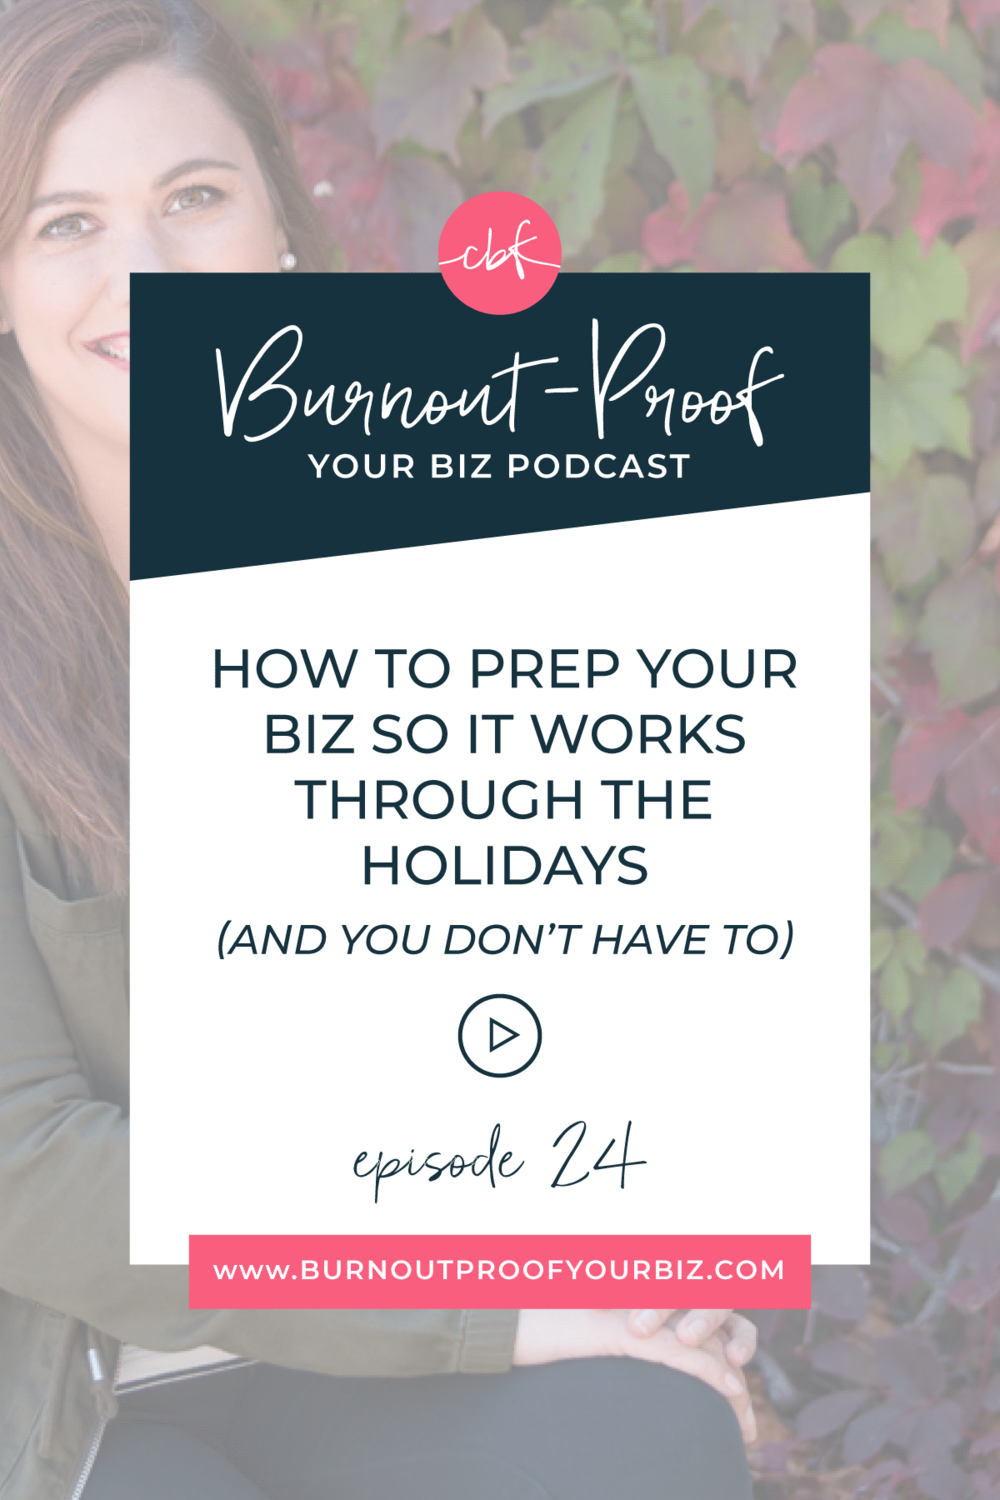 Burnout-Proof Your Biz Podcast with Chelsea B Foster | Episode 024 - How to Prep Your Biz So It Work Through the Holidays (And You Don't Have To) | Learn how to run your biz and live your dream life on your own terms without the fear of burnout.